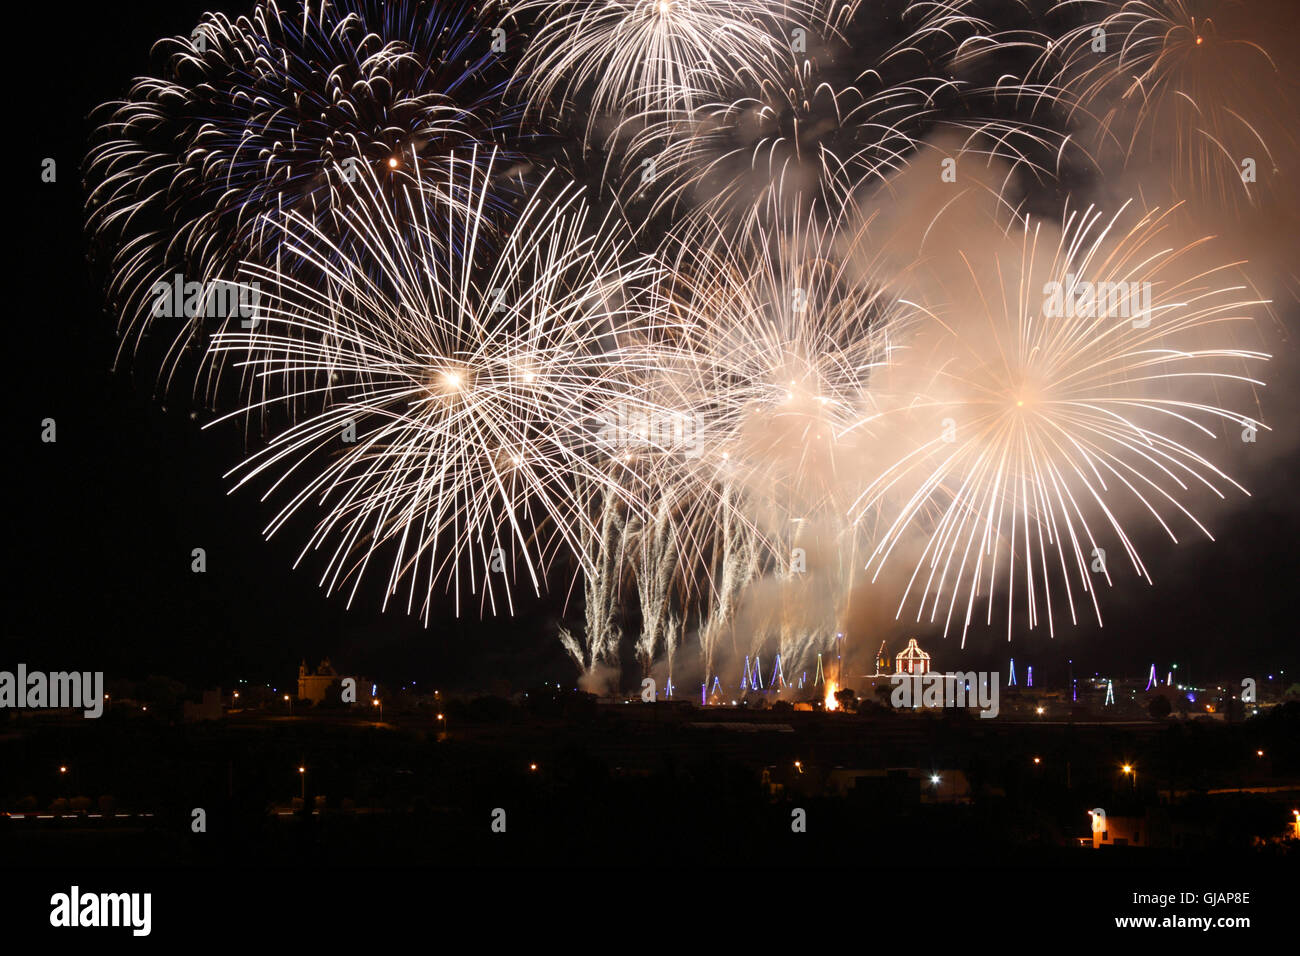 Fireworks during the feast of the Assumption at Ghaxaq, Malta - Stock Image